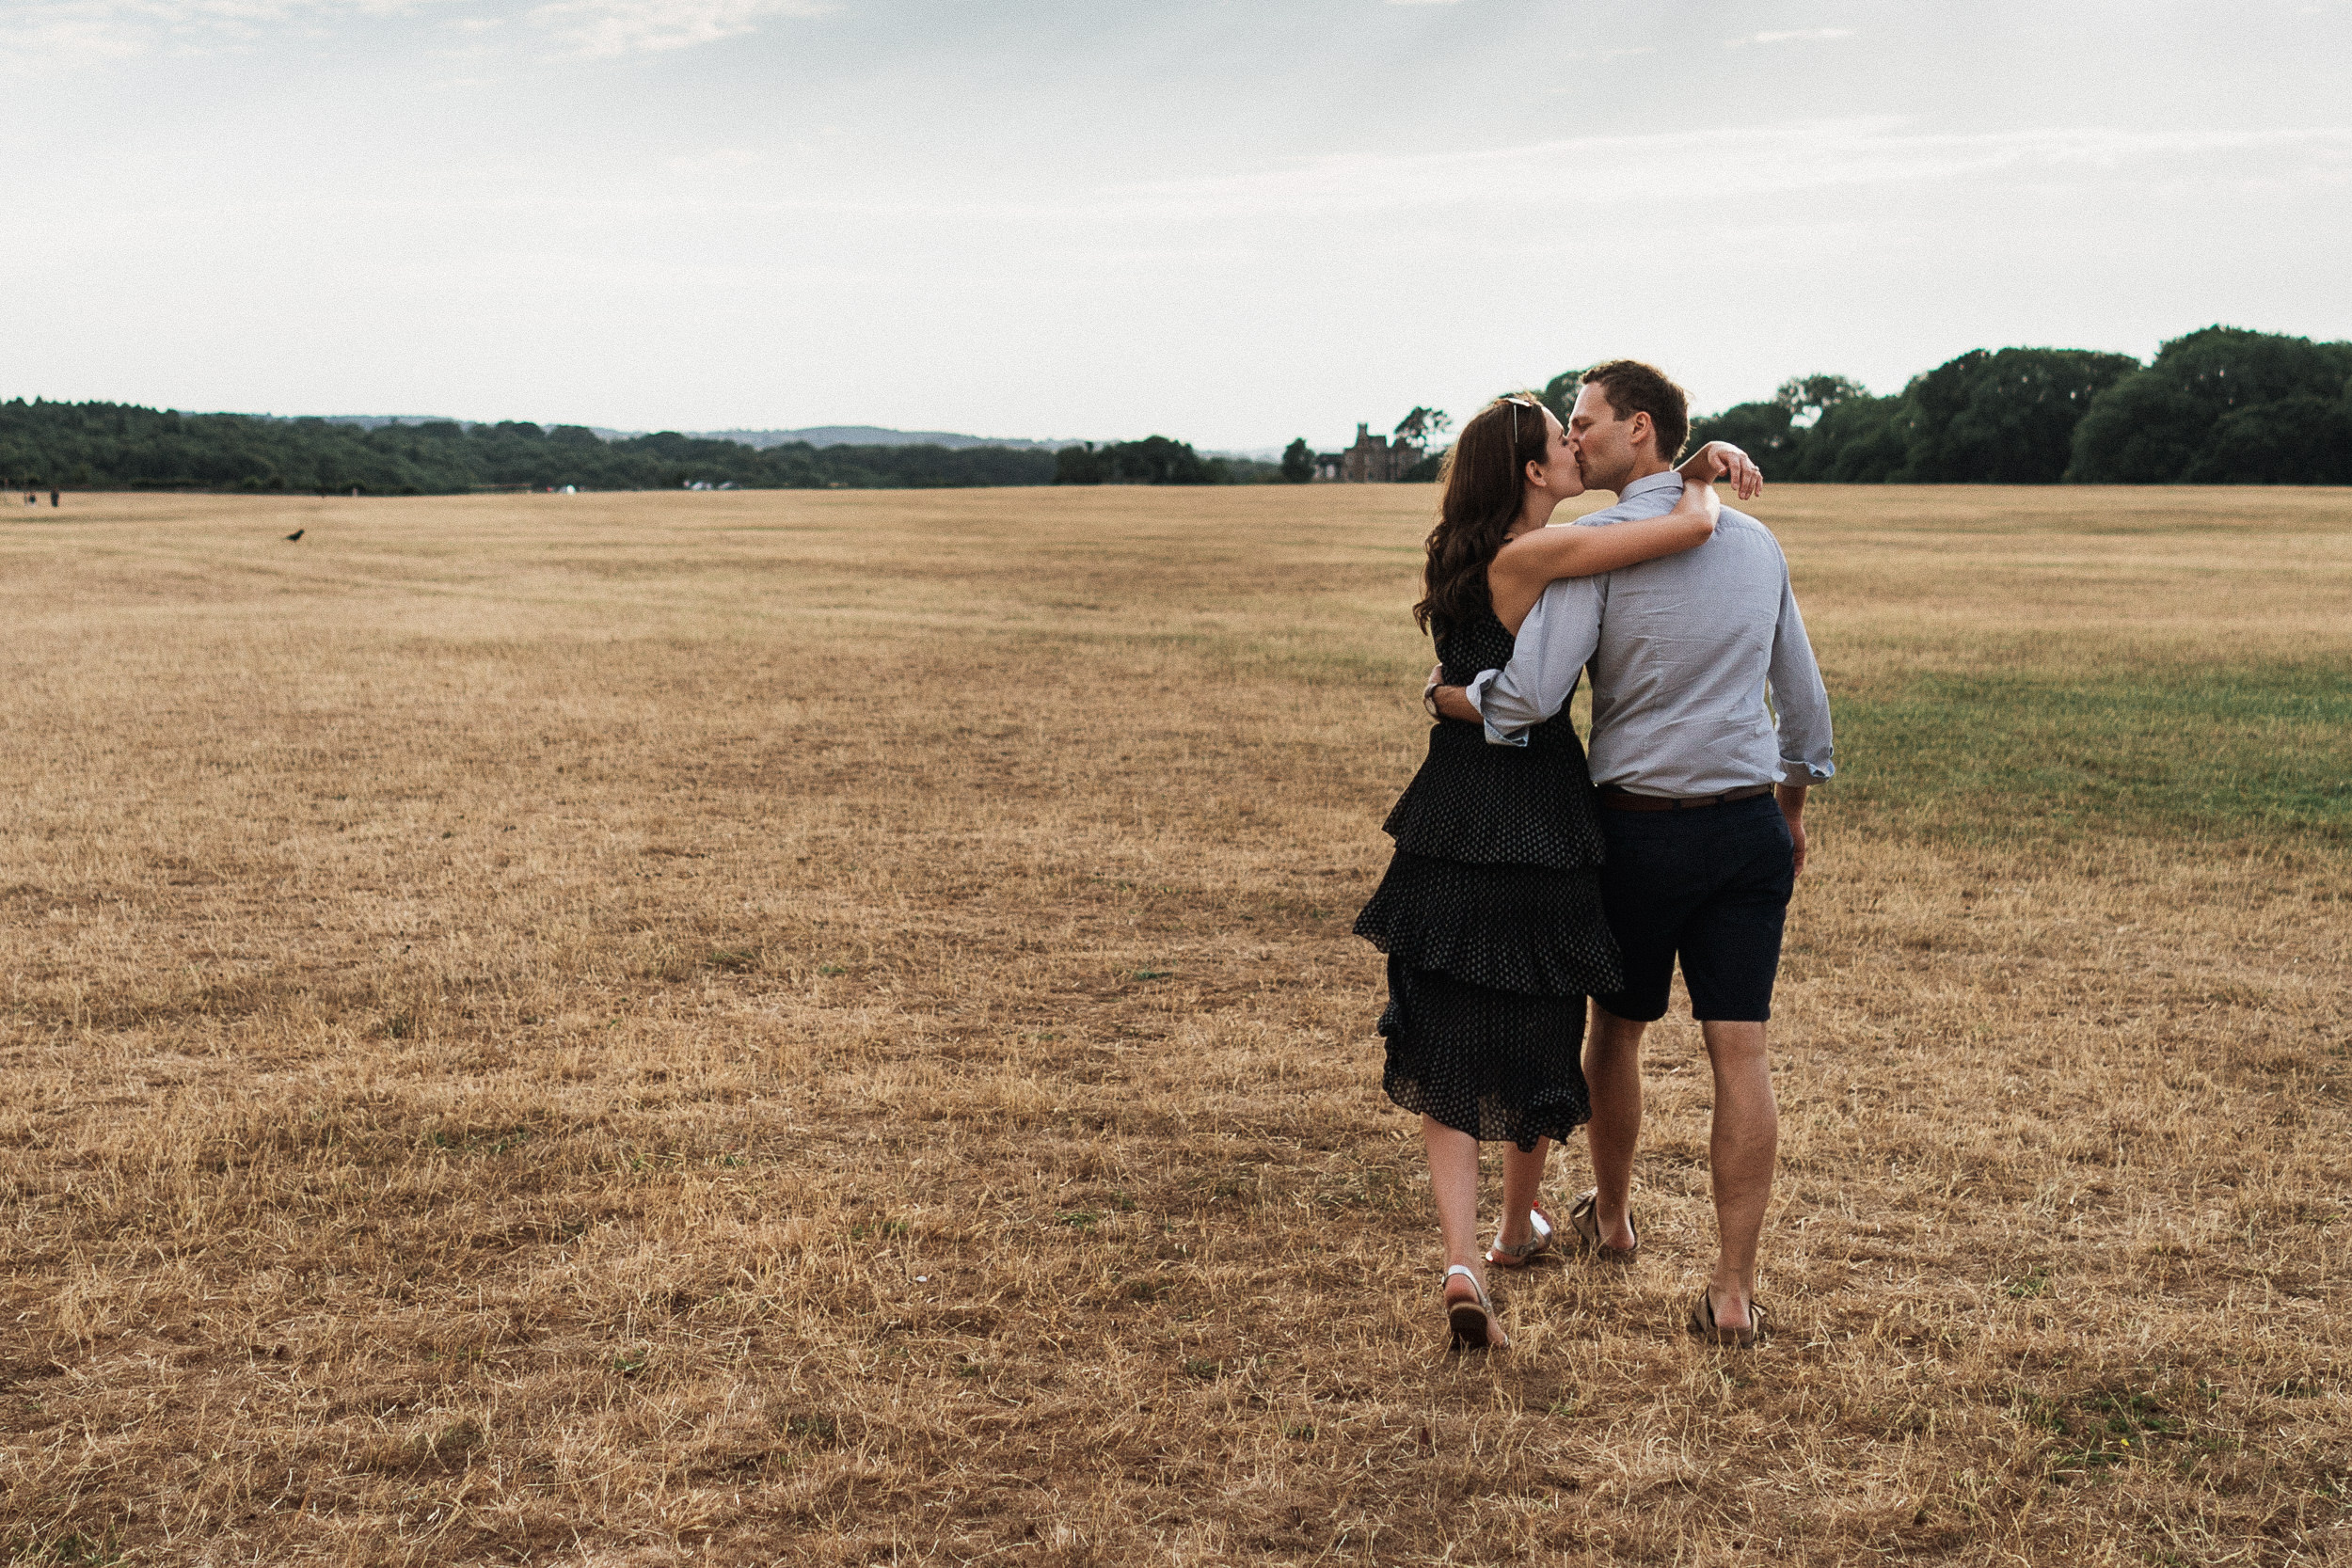 Engagement Shoot on Clifton Downs - The couple walking across the Downs together